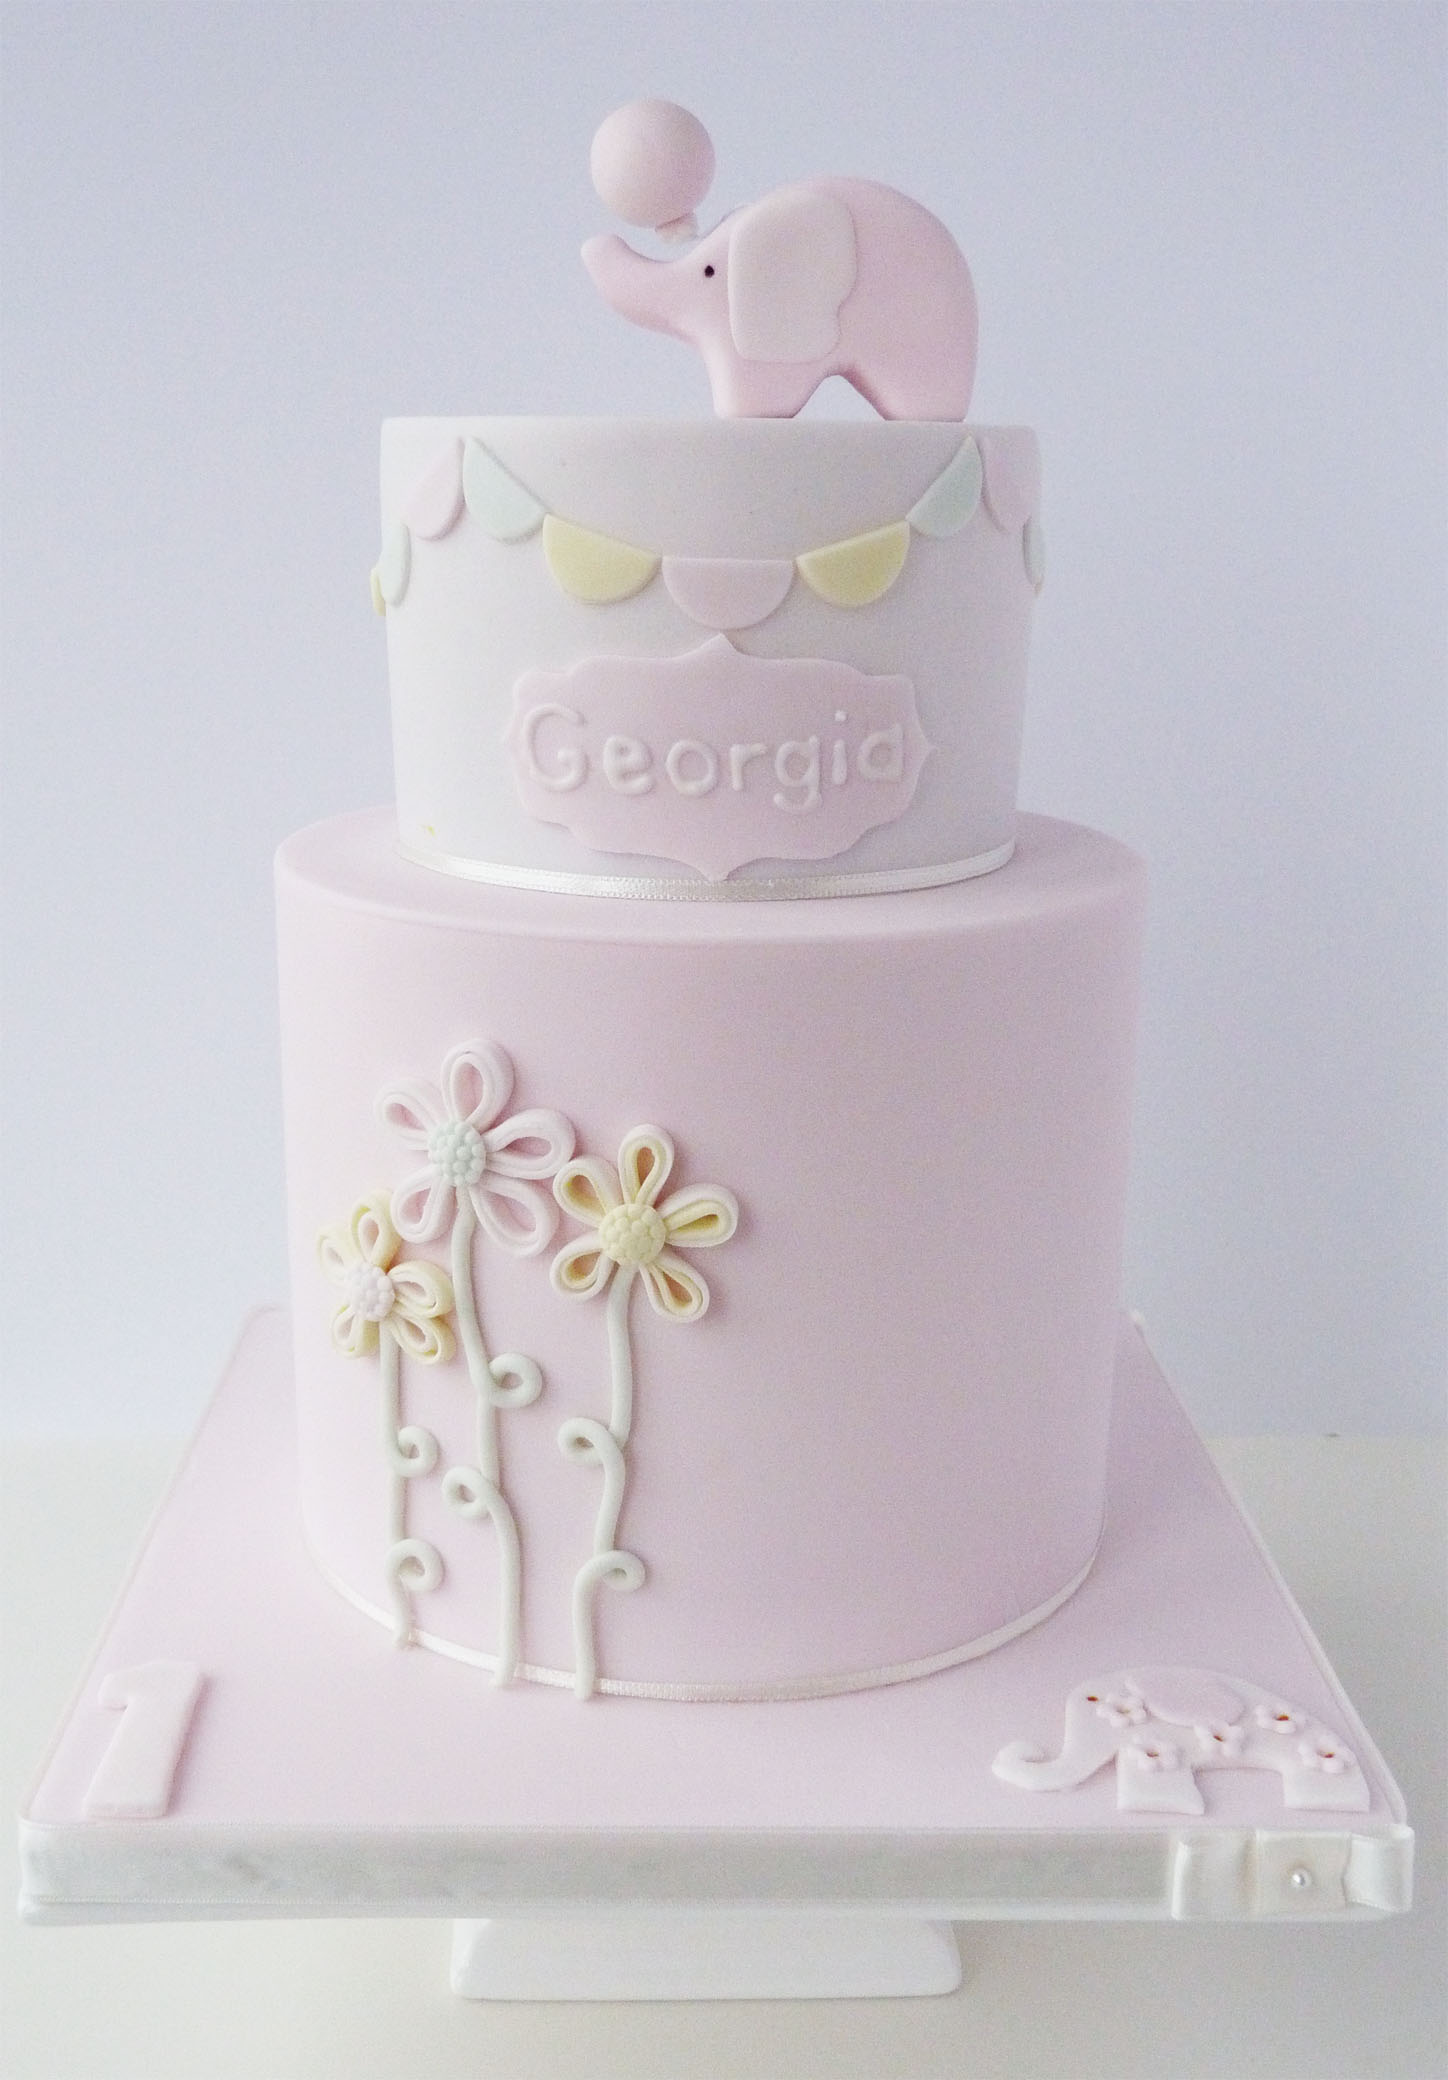 Cake Decorating Classes Scotland : Cake decorating classes scotland bespoke cakes for all occasions 1st birthday cake